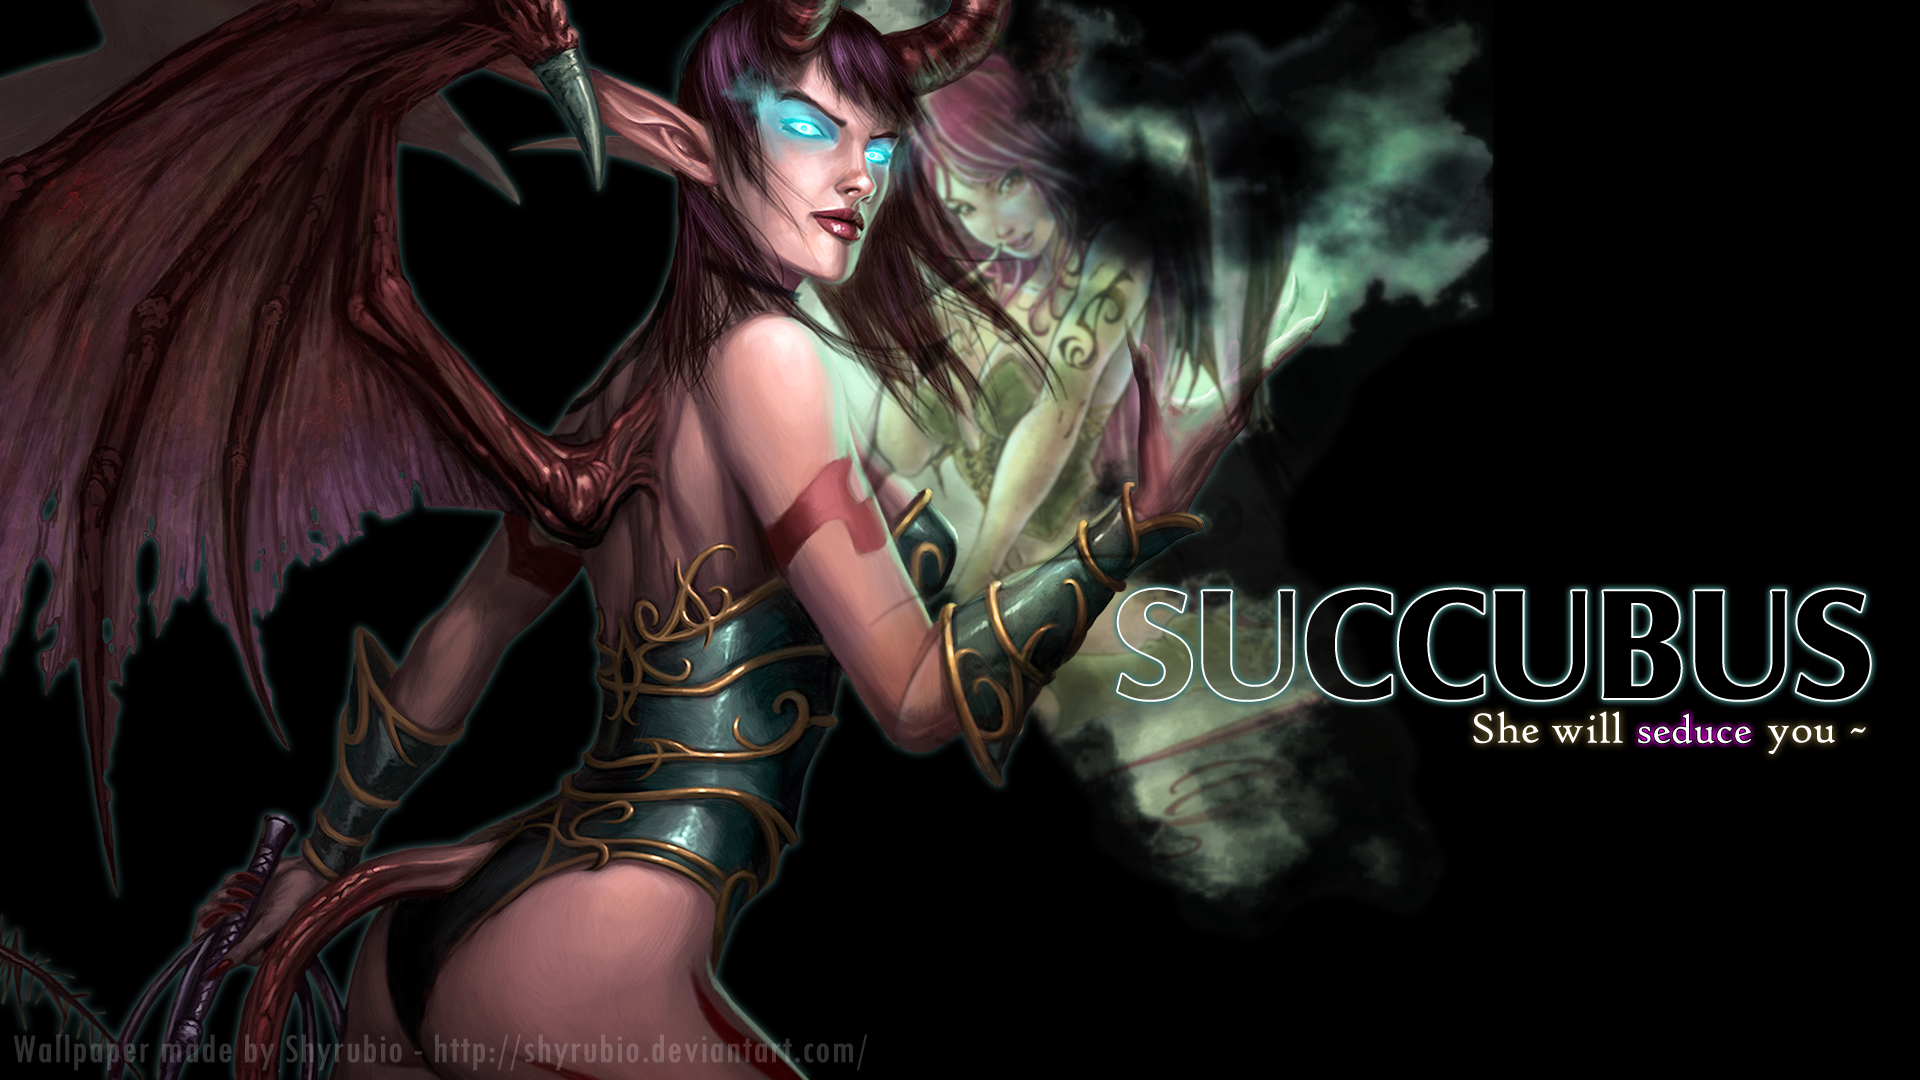 Succubus pictures customization wallpaper fantasy for Deviantart wallpaper